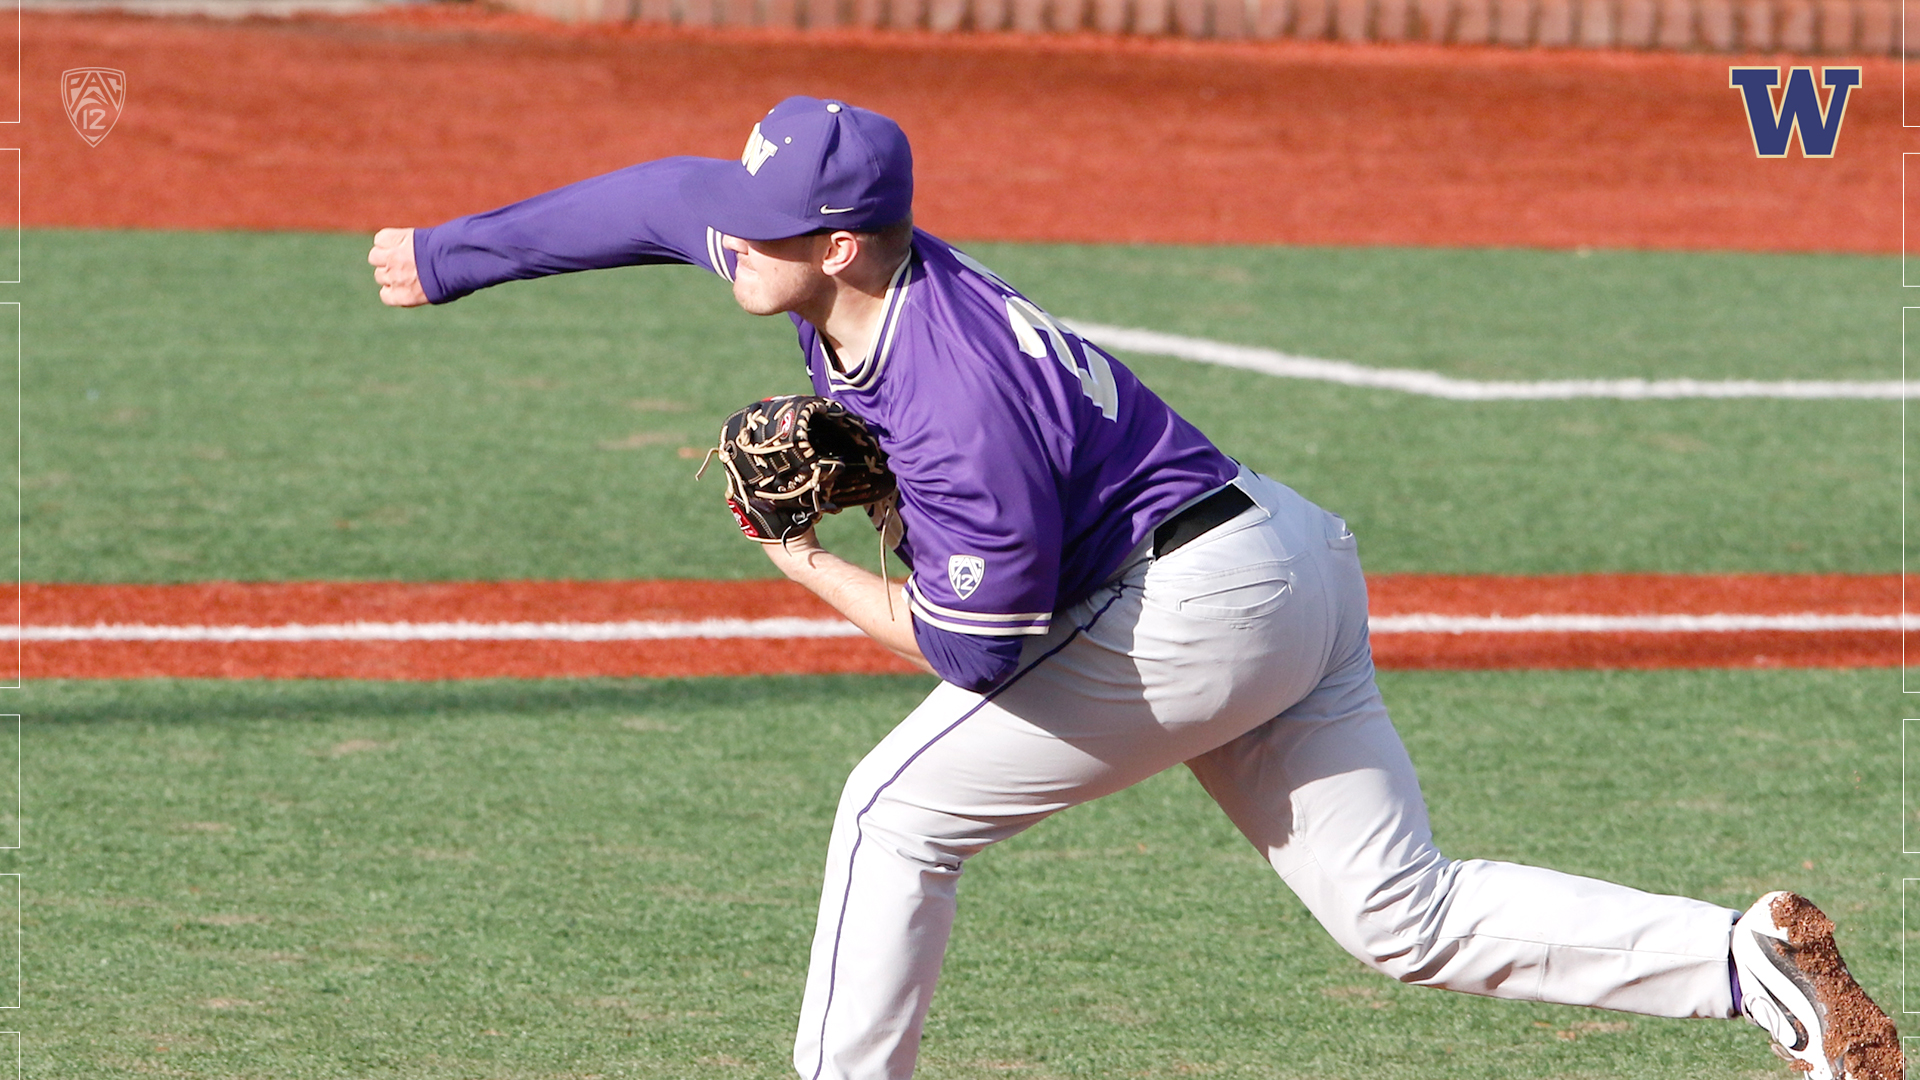 Vauxhall Academy grad Josh Burgmann (Nanaimo, B.C.) struck out nine and allowed just one run in 5 2/3 innings to pick up a win for the University of Washington Huskies. Photo: University of Washington Athletics